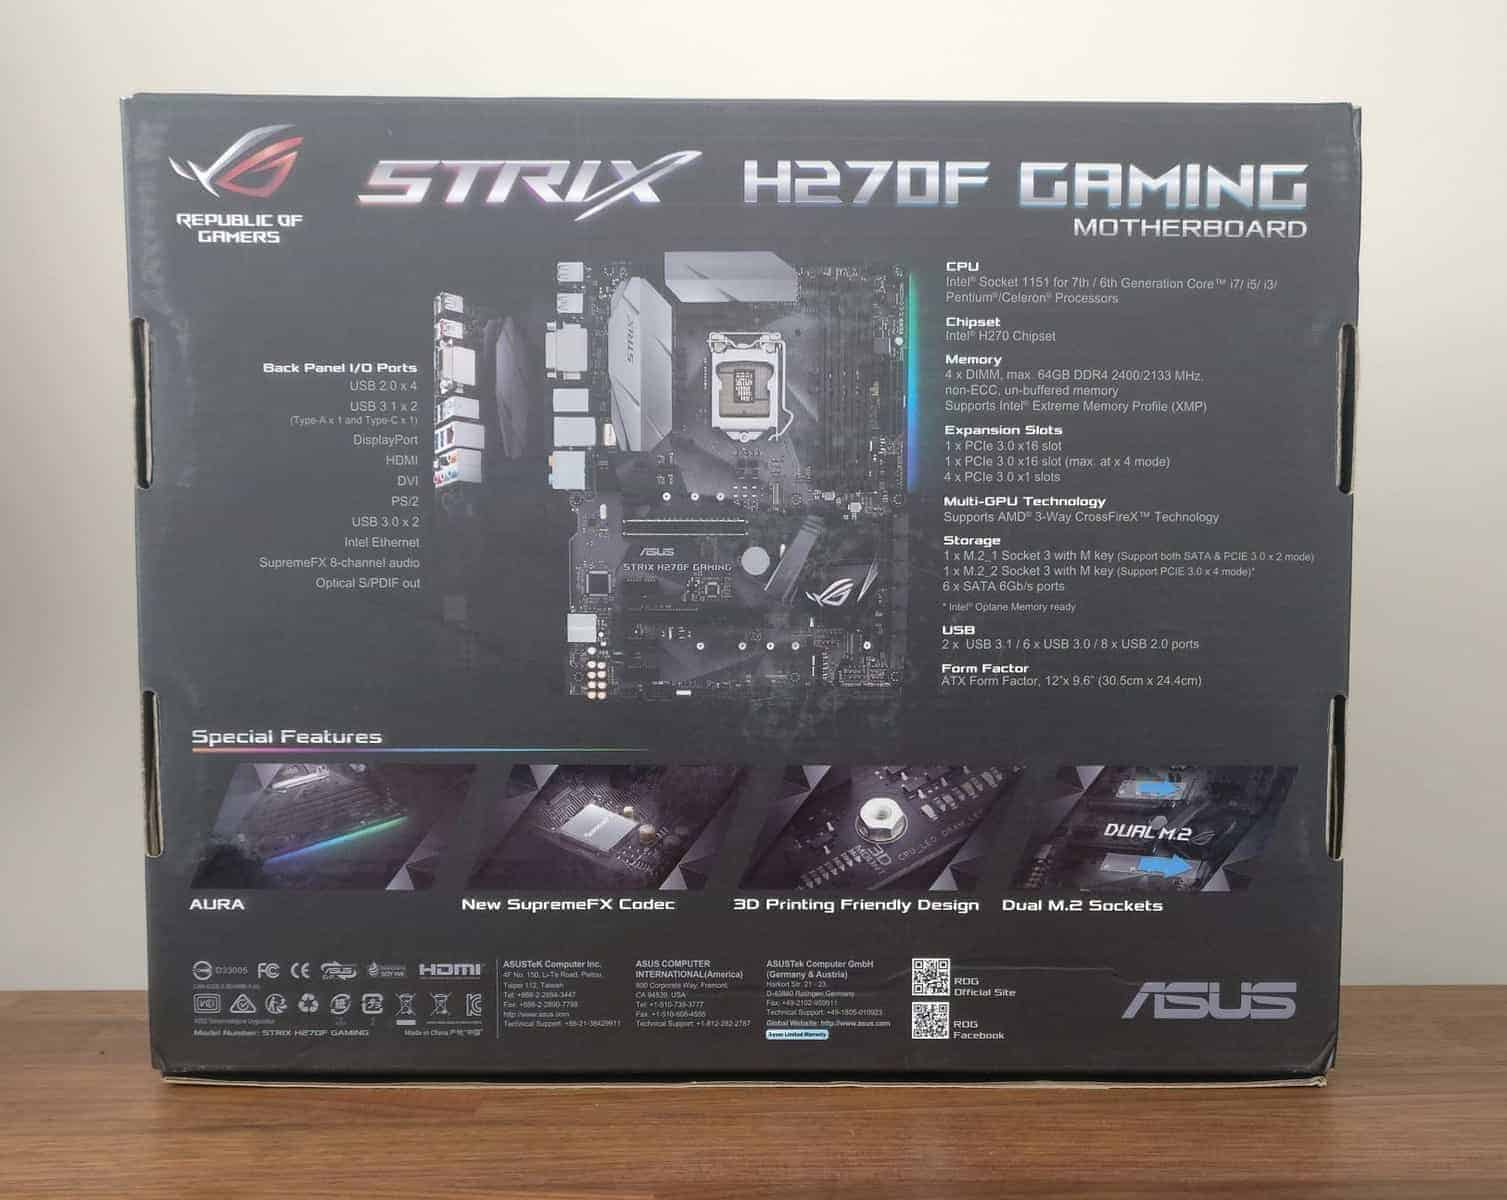 Asus-Strix-Motherboard-Photos-02 Asus Strix H270F ROG Gaming Motherboard Review